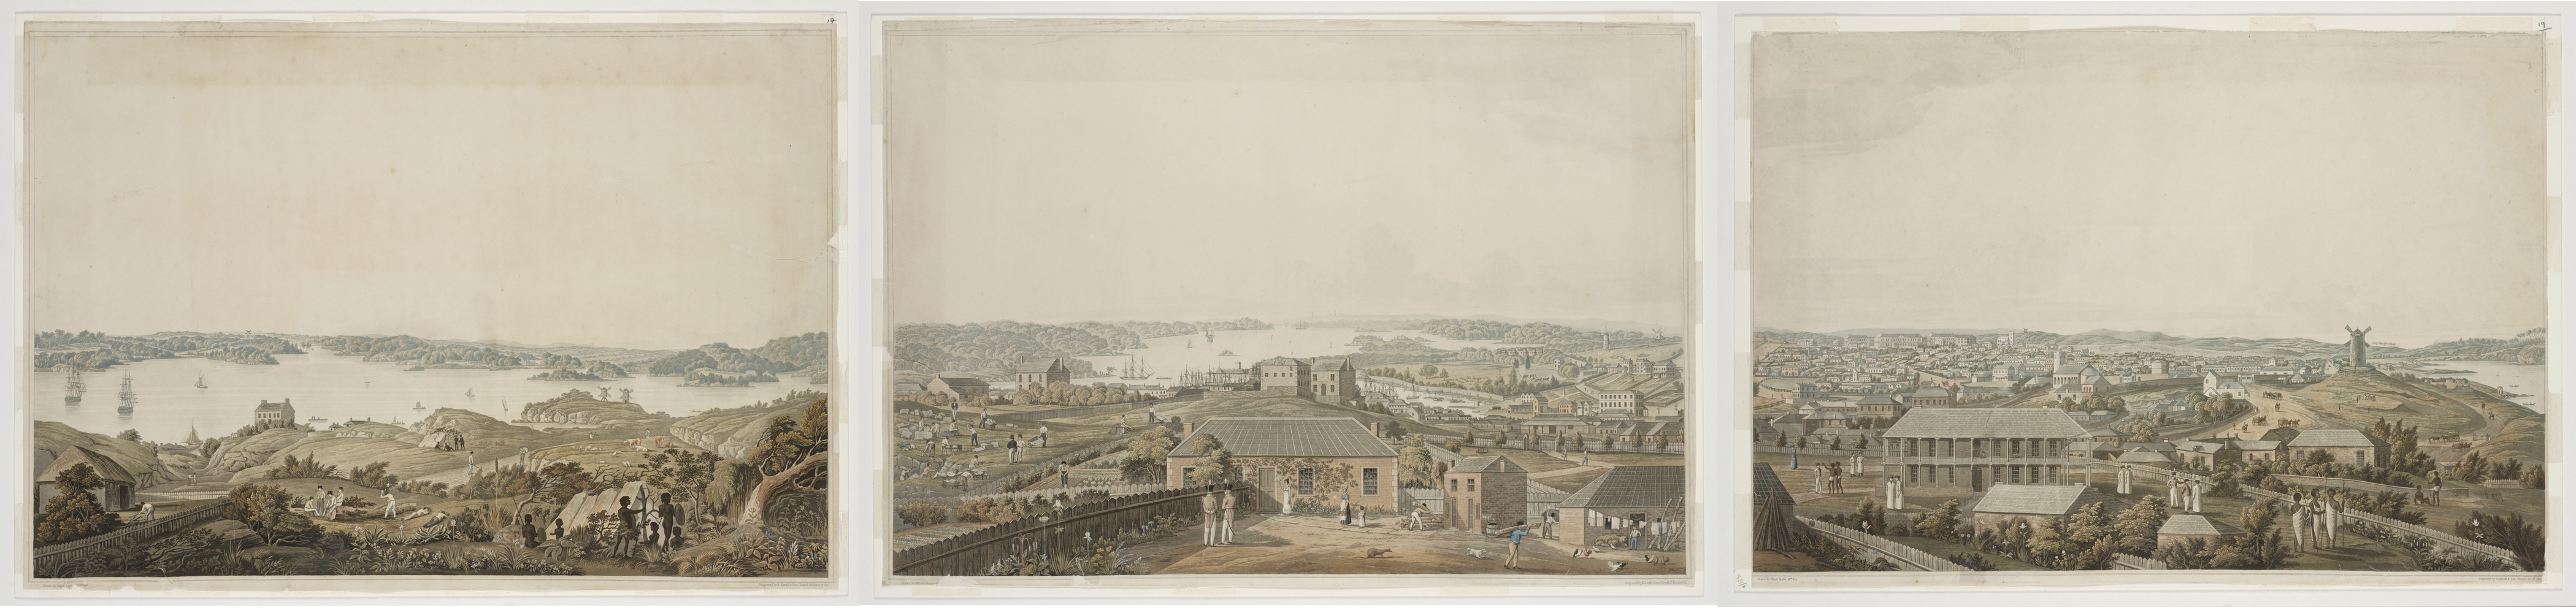 Panoramic views of Port Jackson, ca. 1821 / drawn by Major James Taylor, engraved by R. Havell & Sons